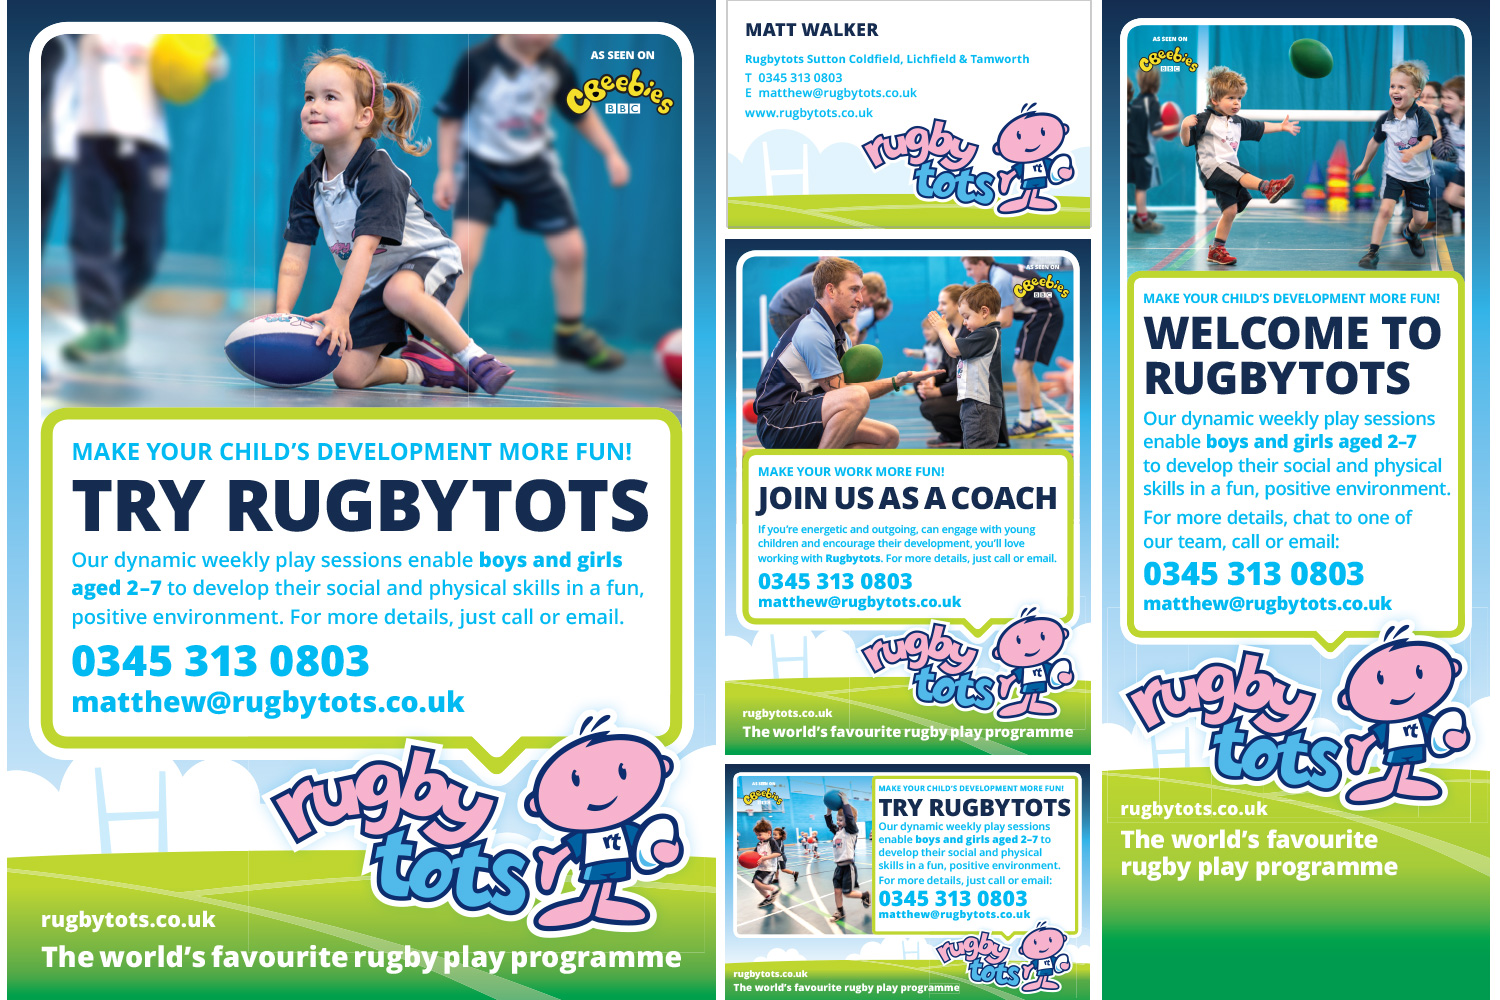 Rugbytots marketing materials in English